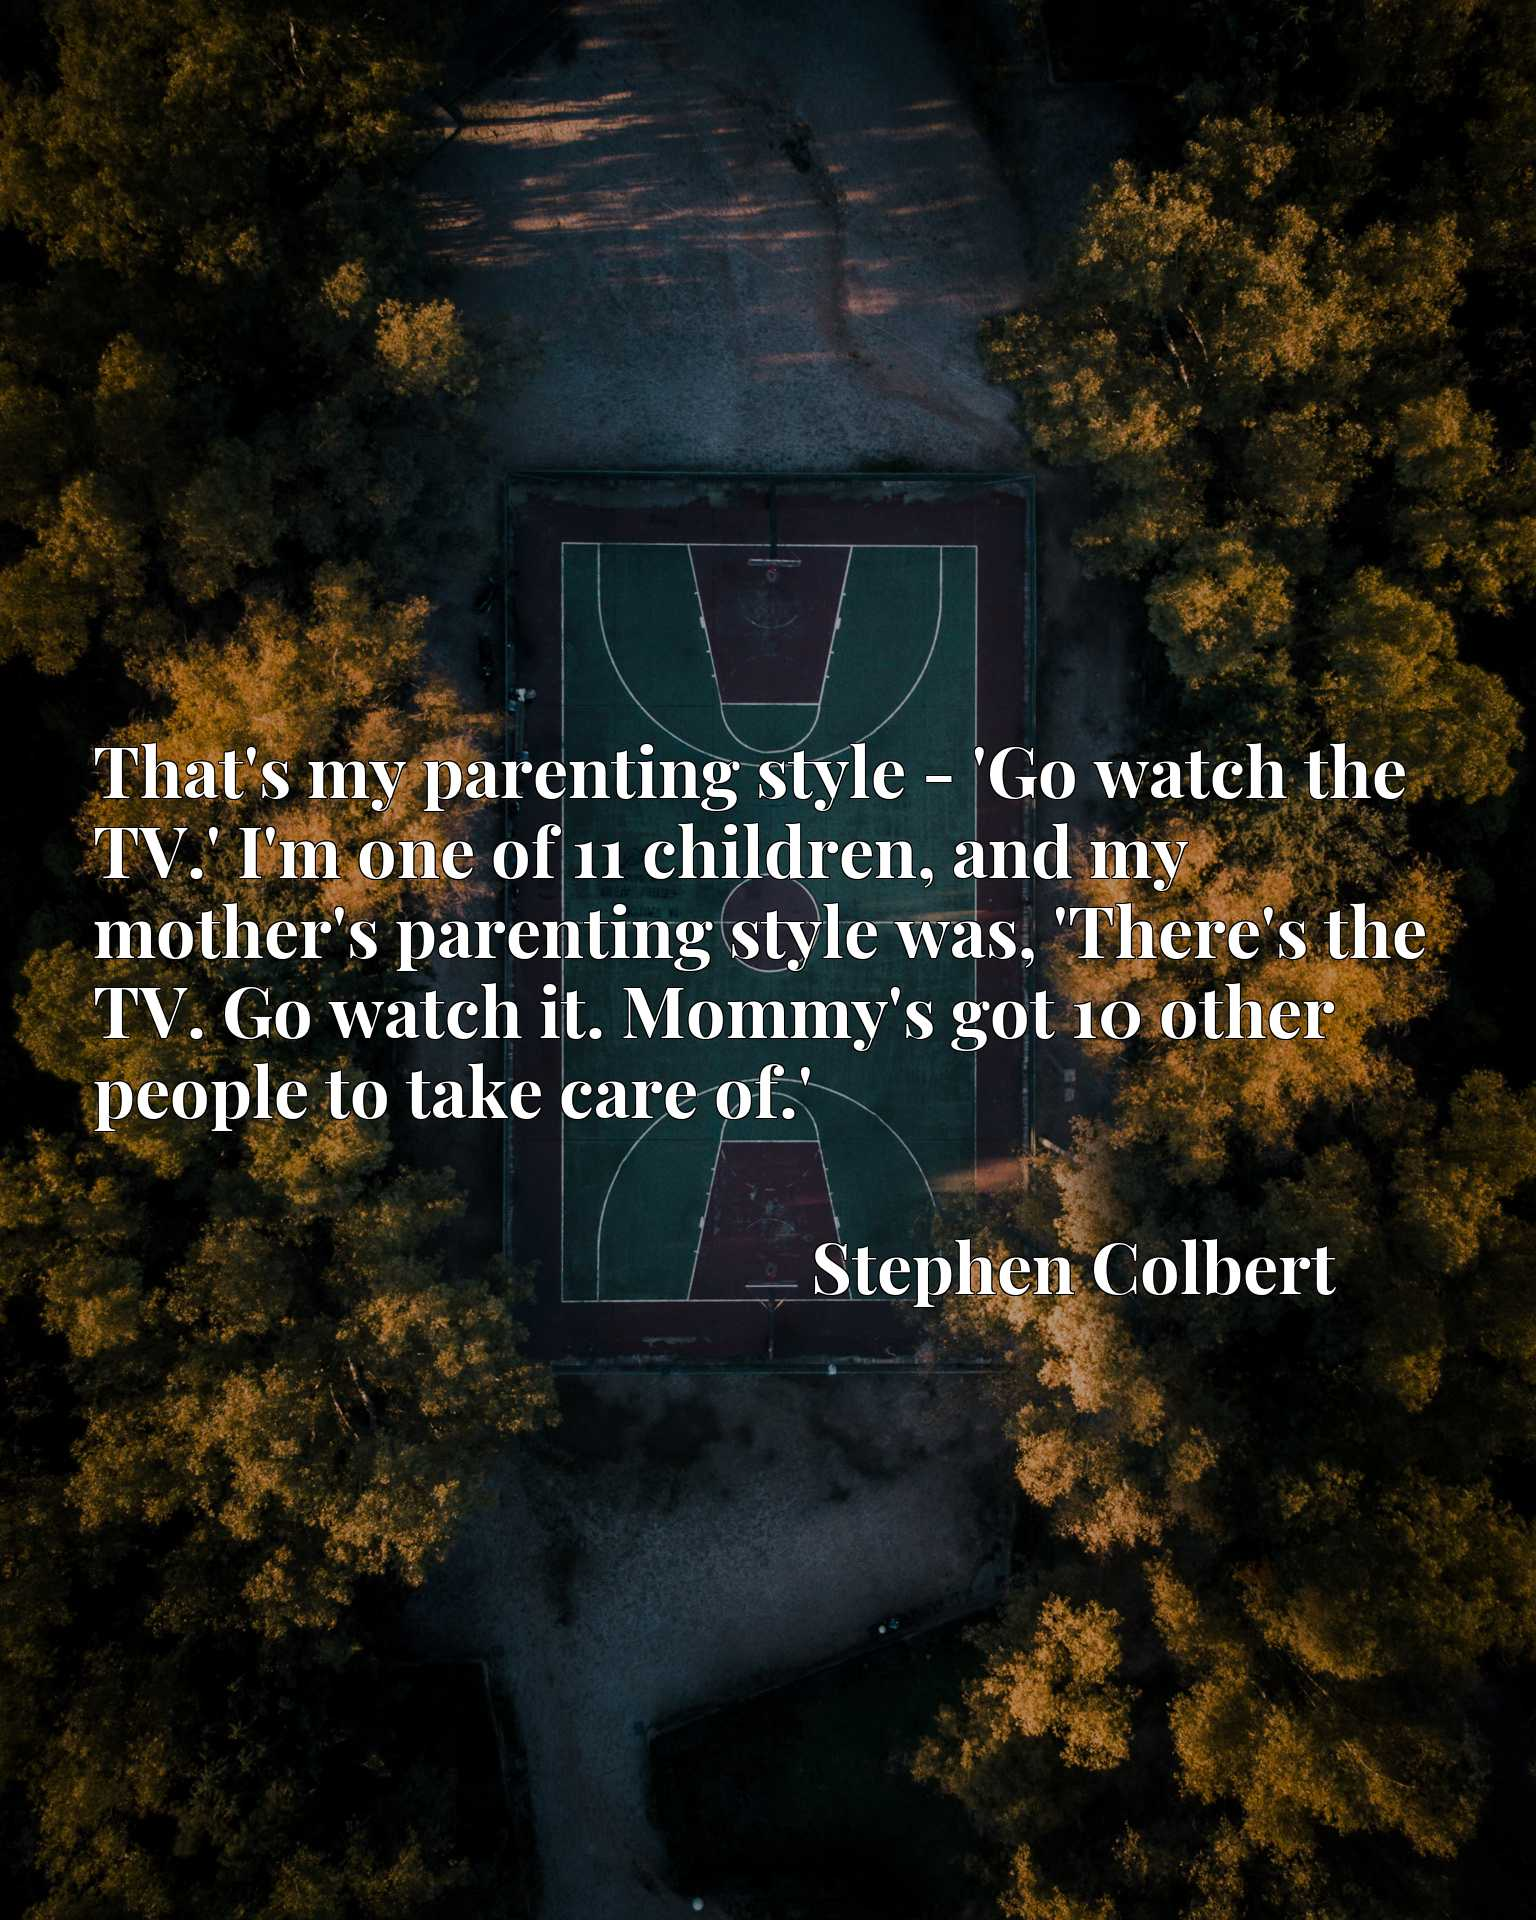 That's my parenting style - 'Go watch the TV.' I'm one of 11 children, and my mother's parenting style was, 'There's the TV. Go watch it. Mommy's got 10 other people to take care of.'